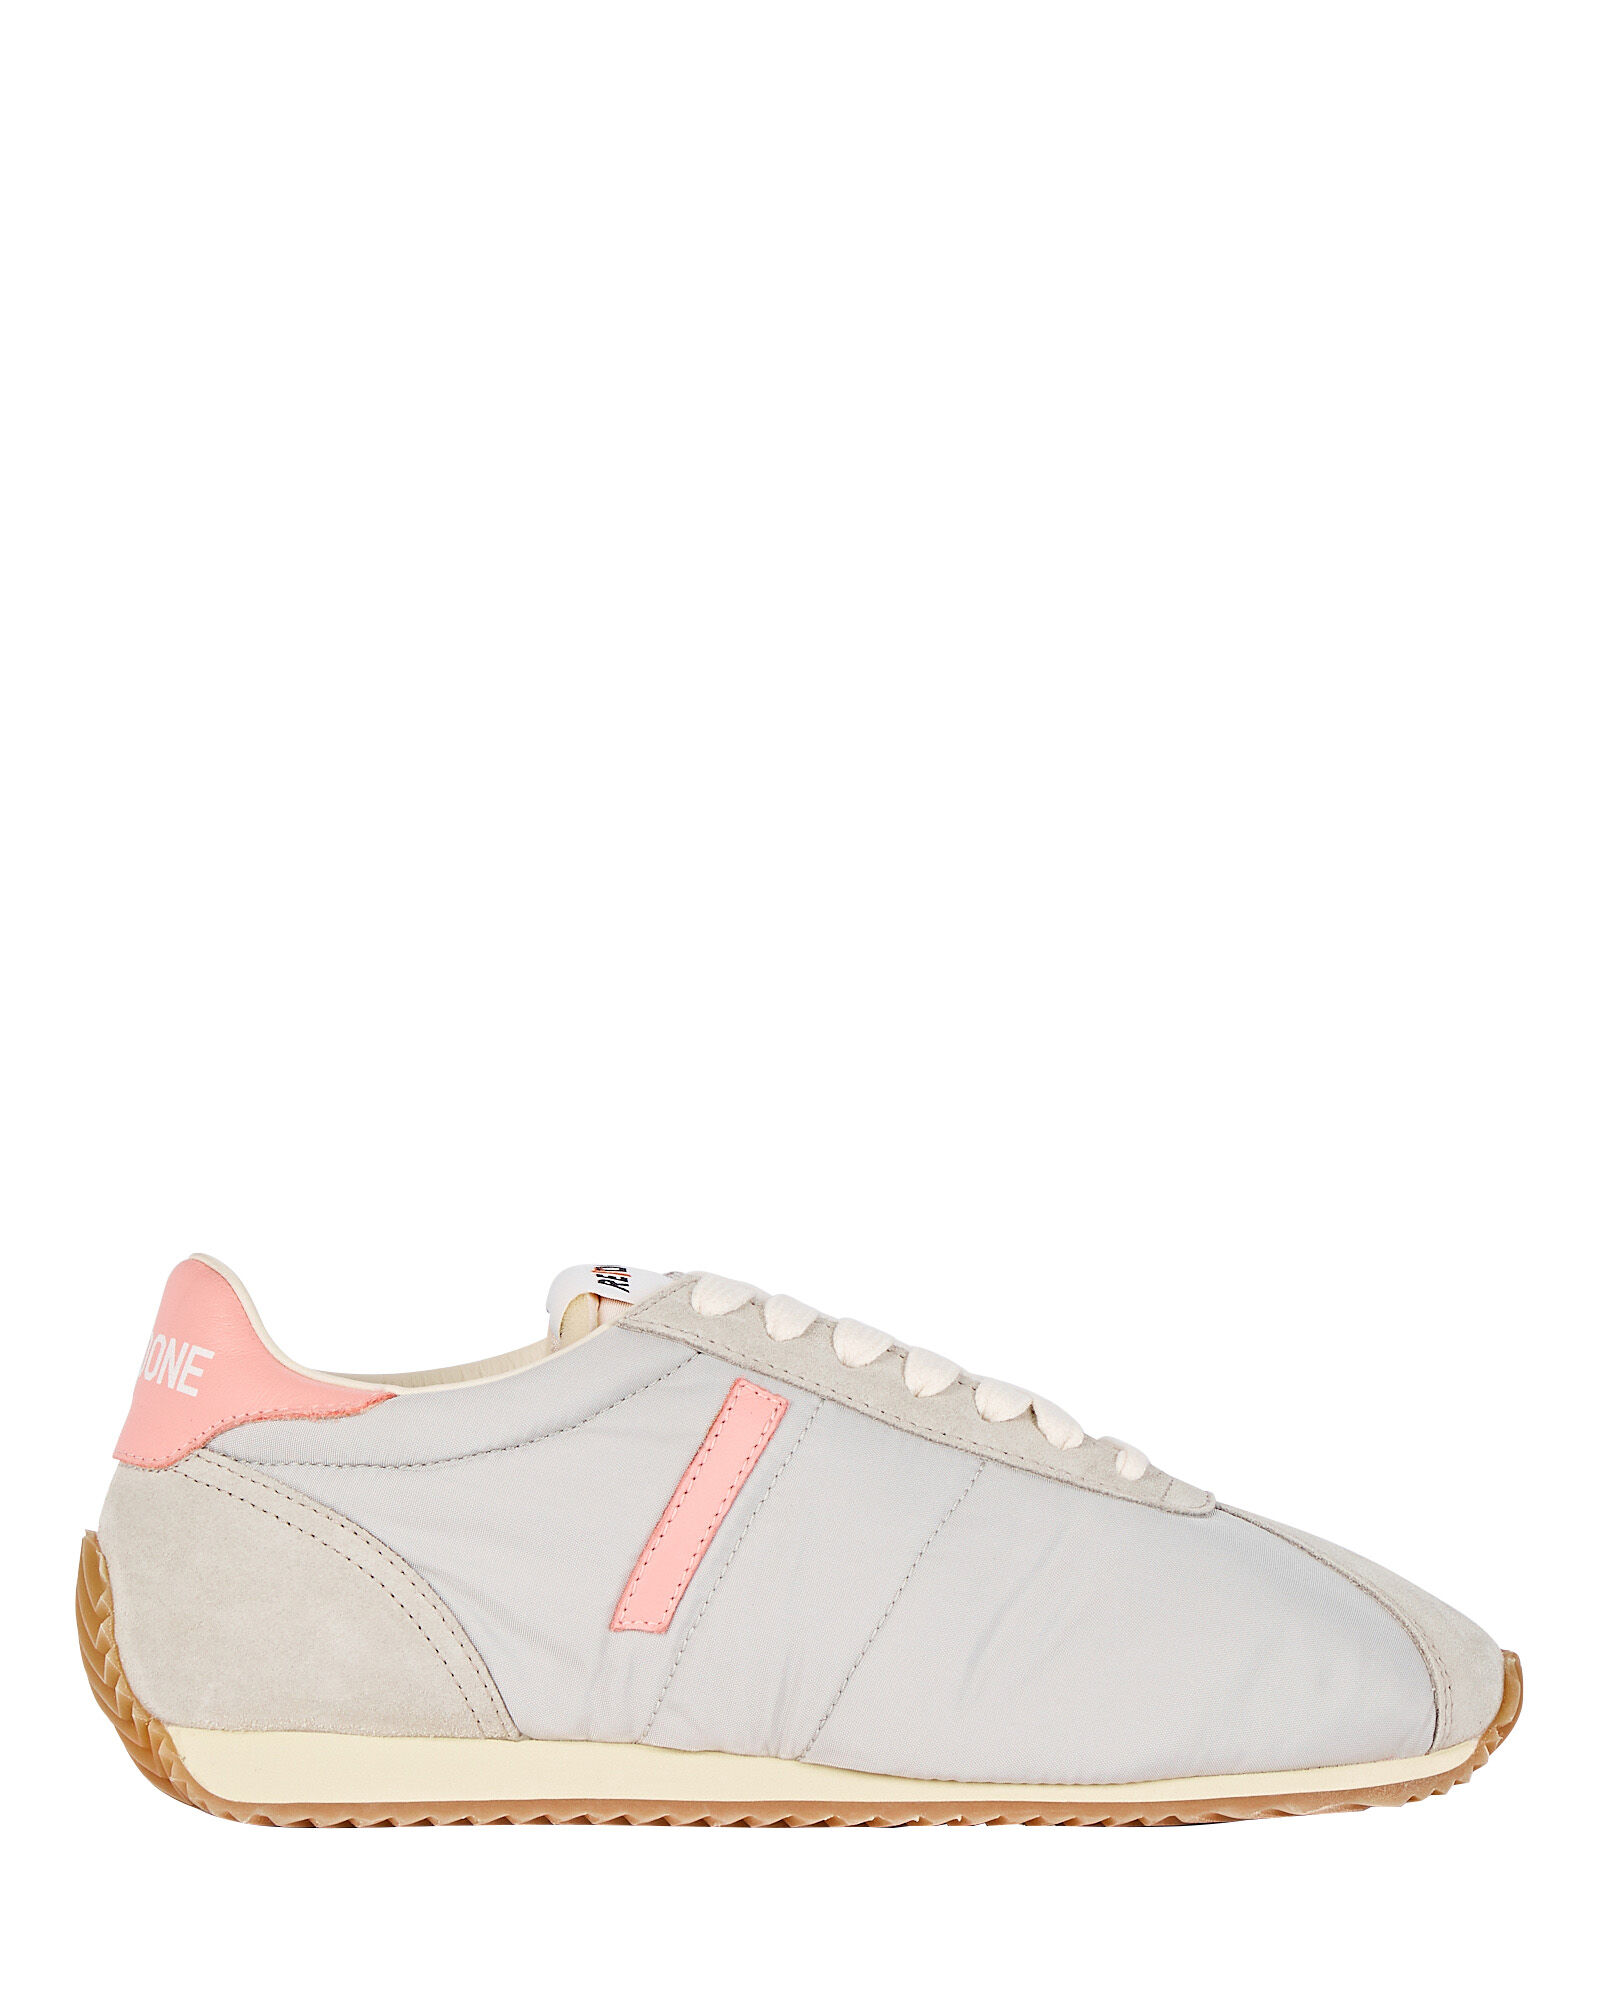 RE/DONE 70s Leather Tennis Sneakers